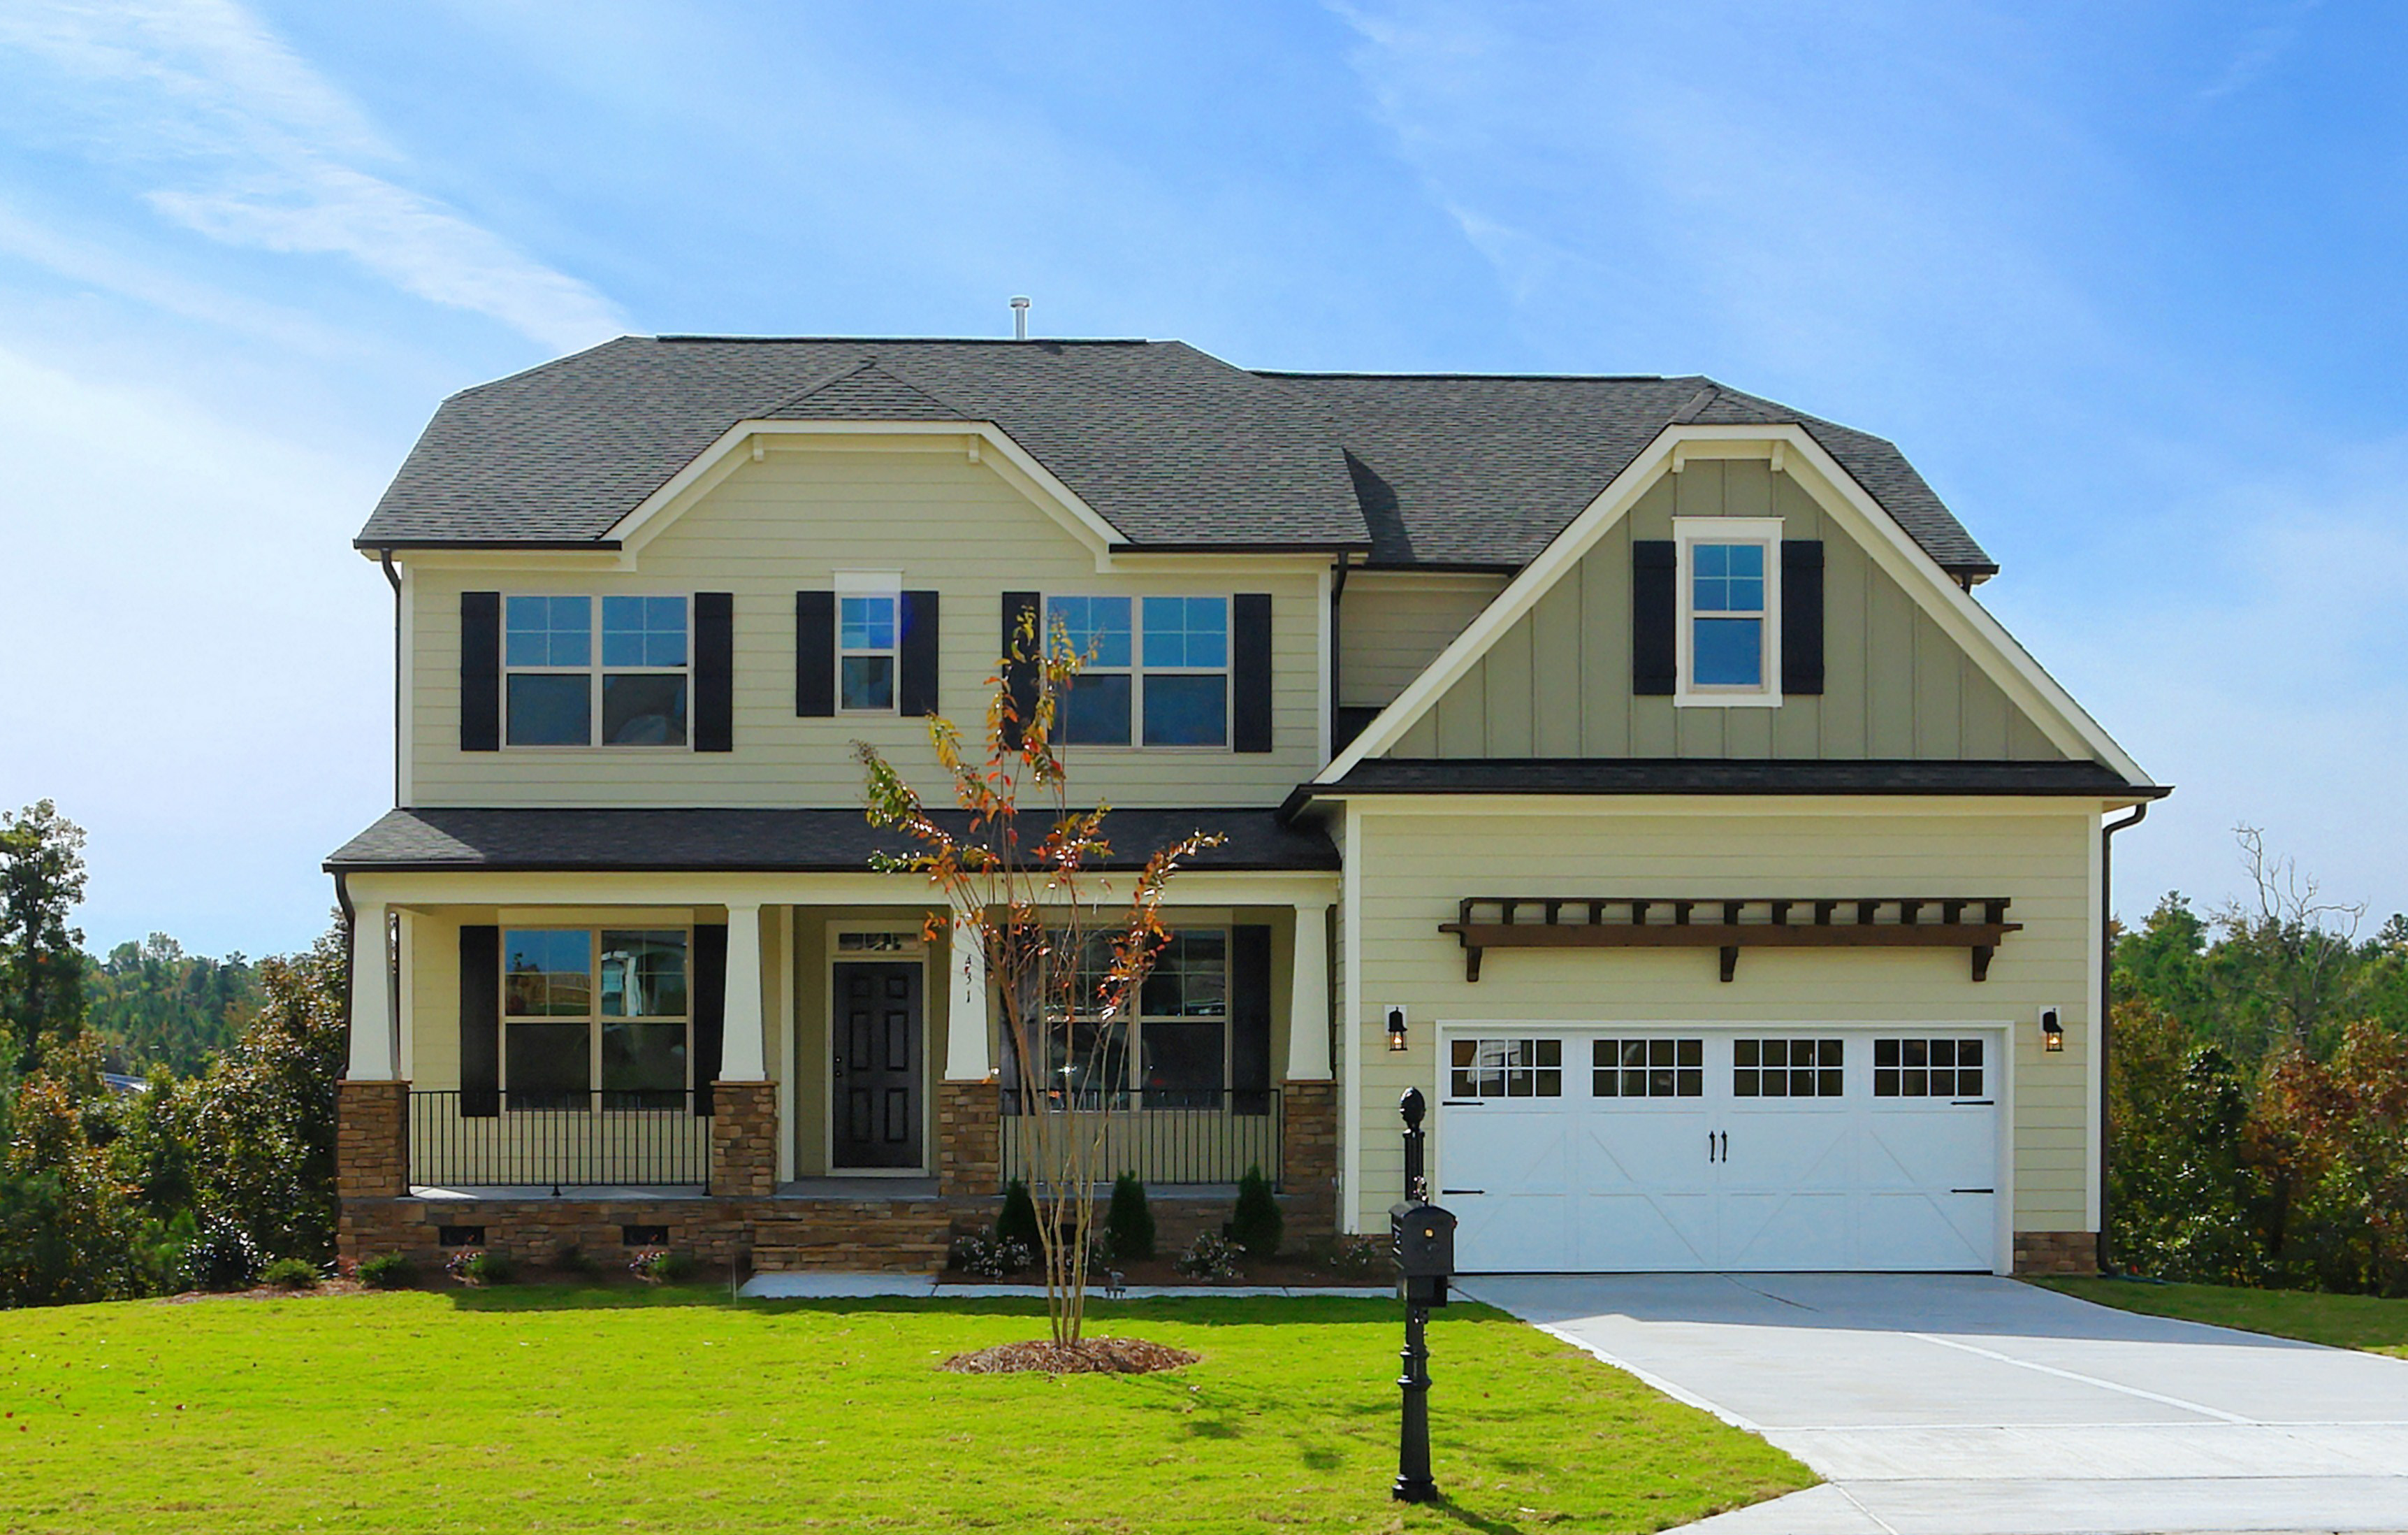 Eastwood homes patriots landing richmond virginia for Custom home build calculator